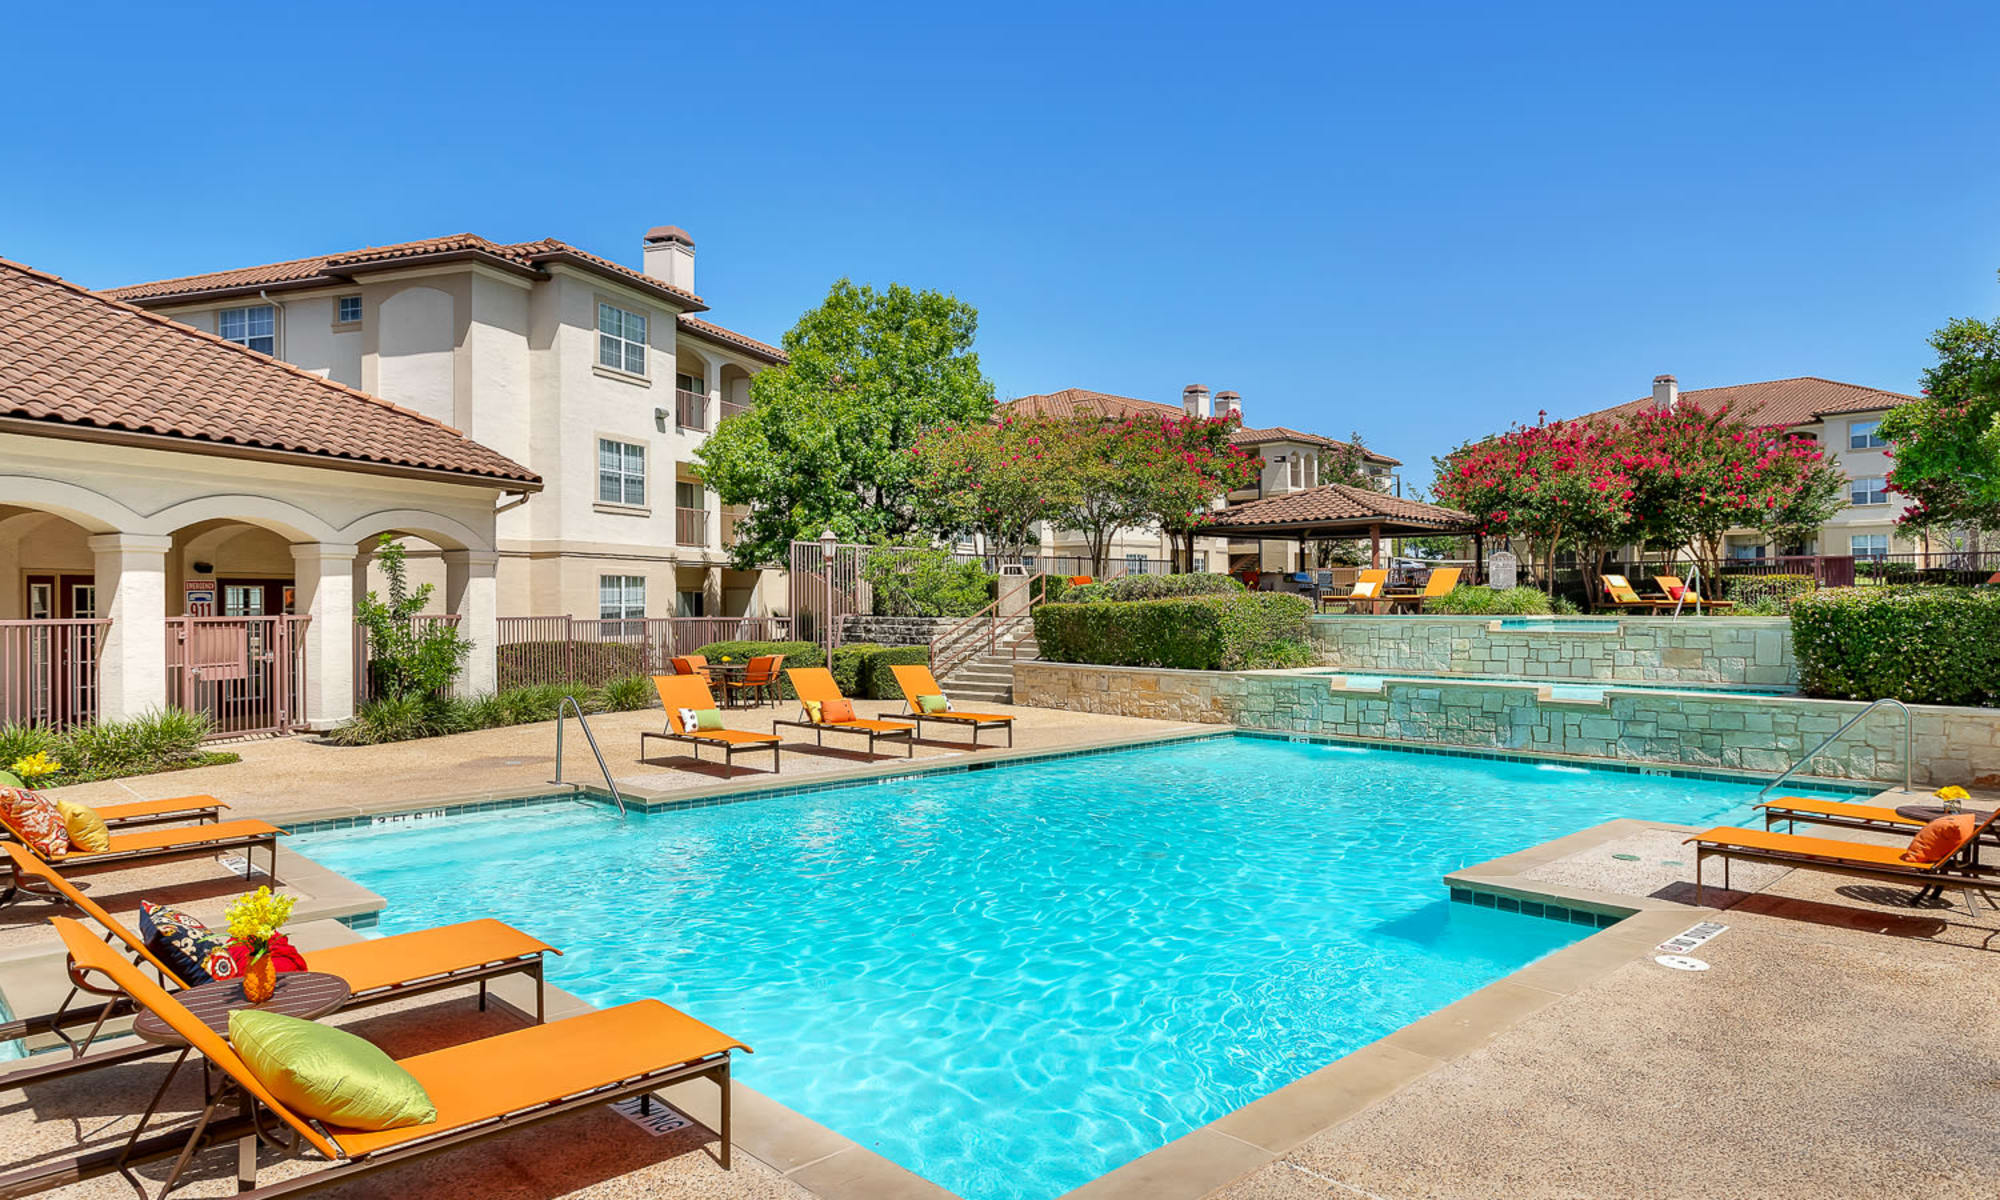 Apartments at Mira Vista at La Cantera in San Antonio, Texas